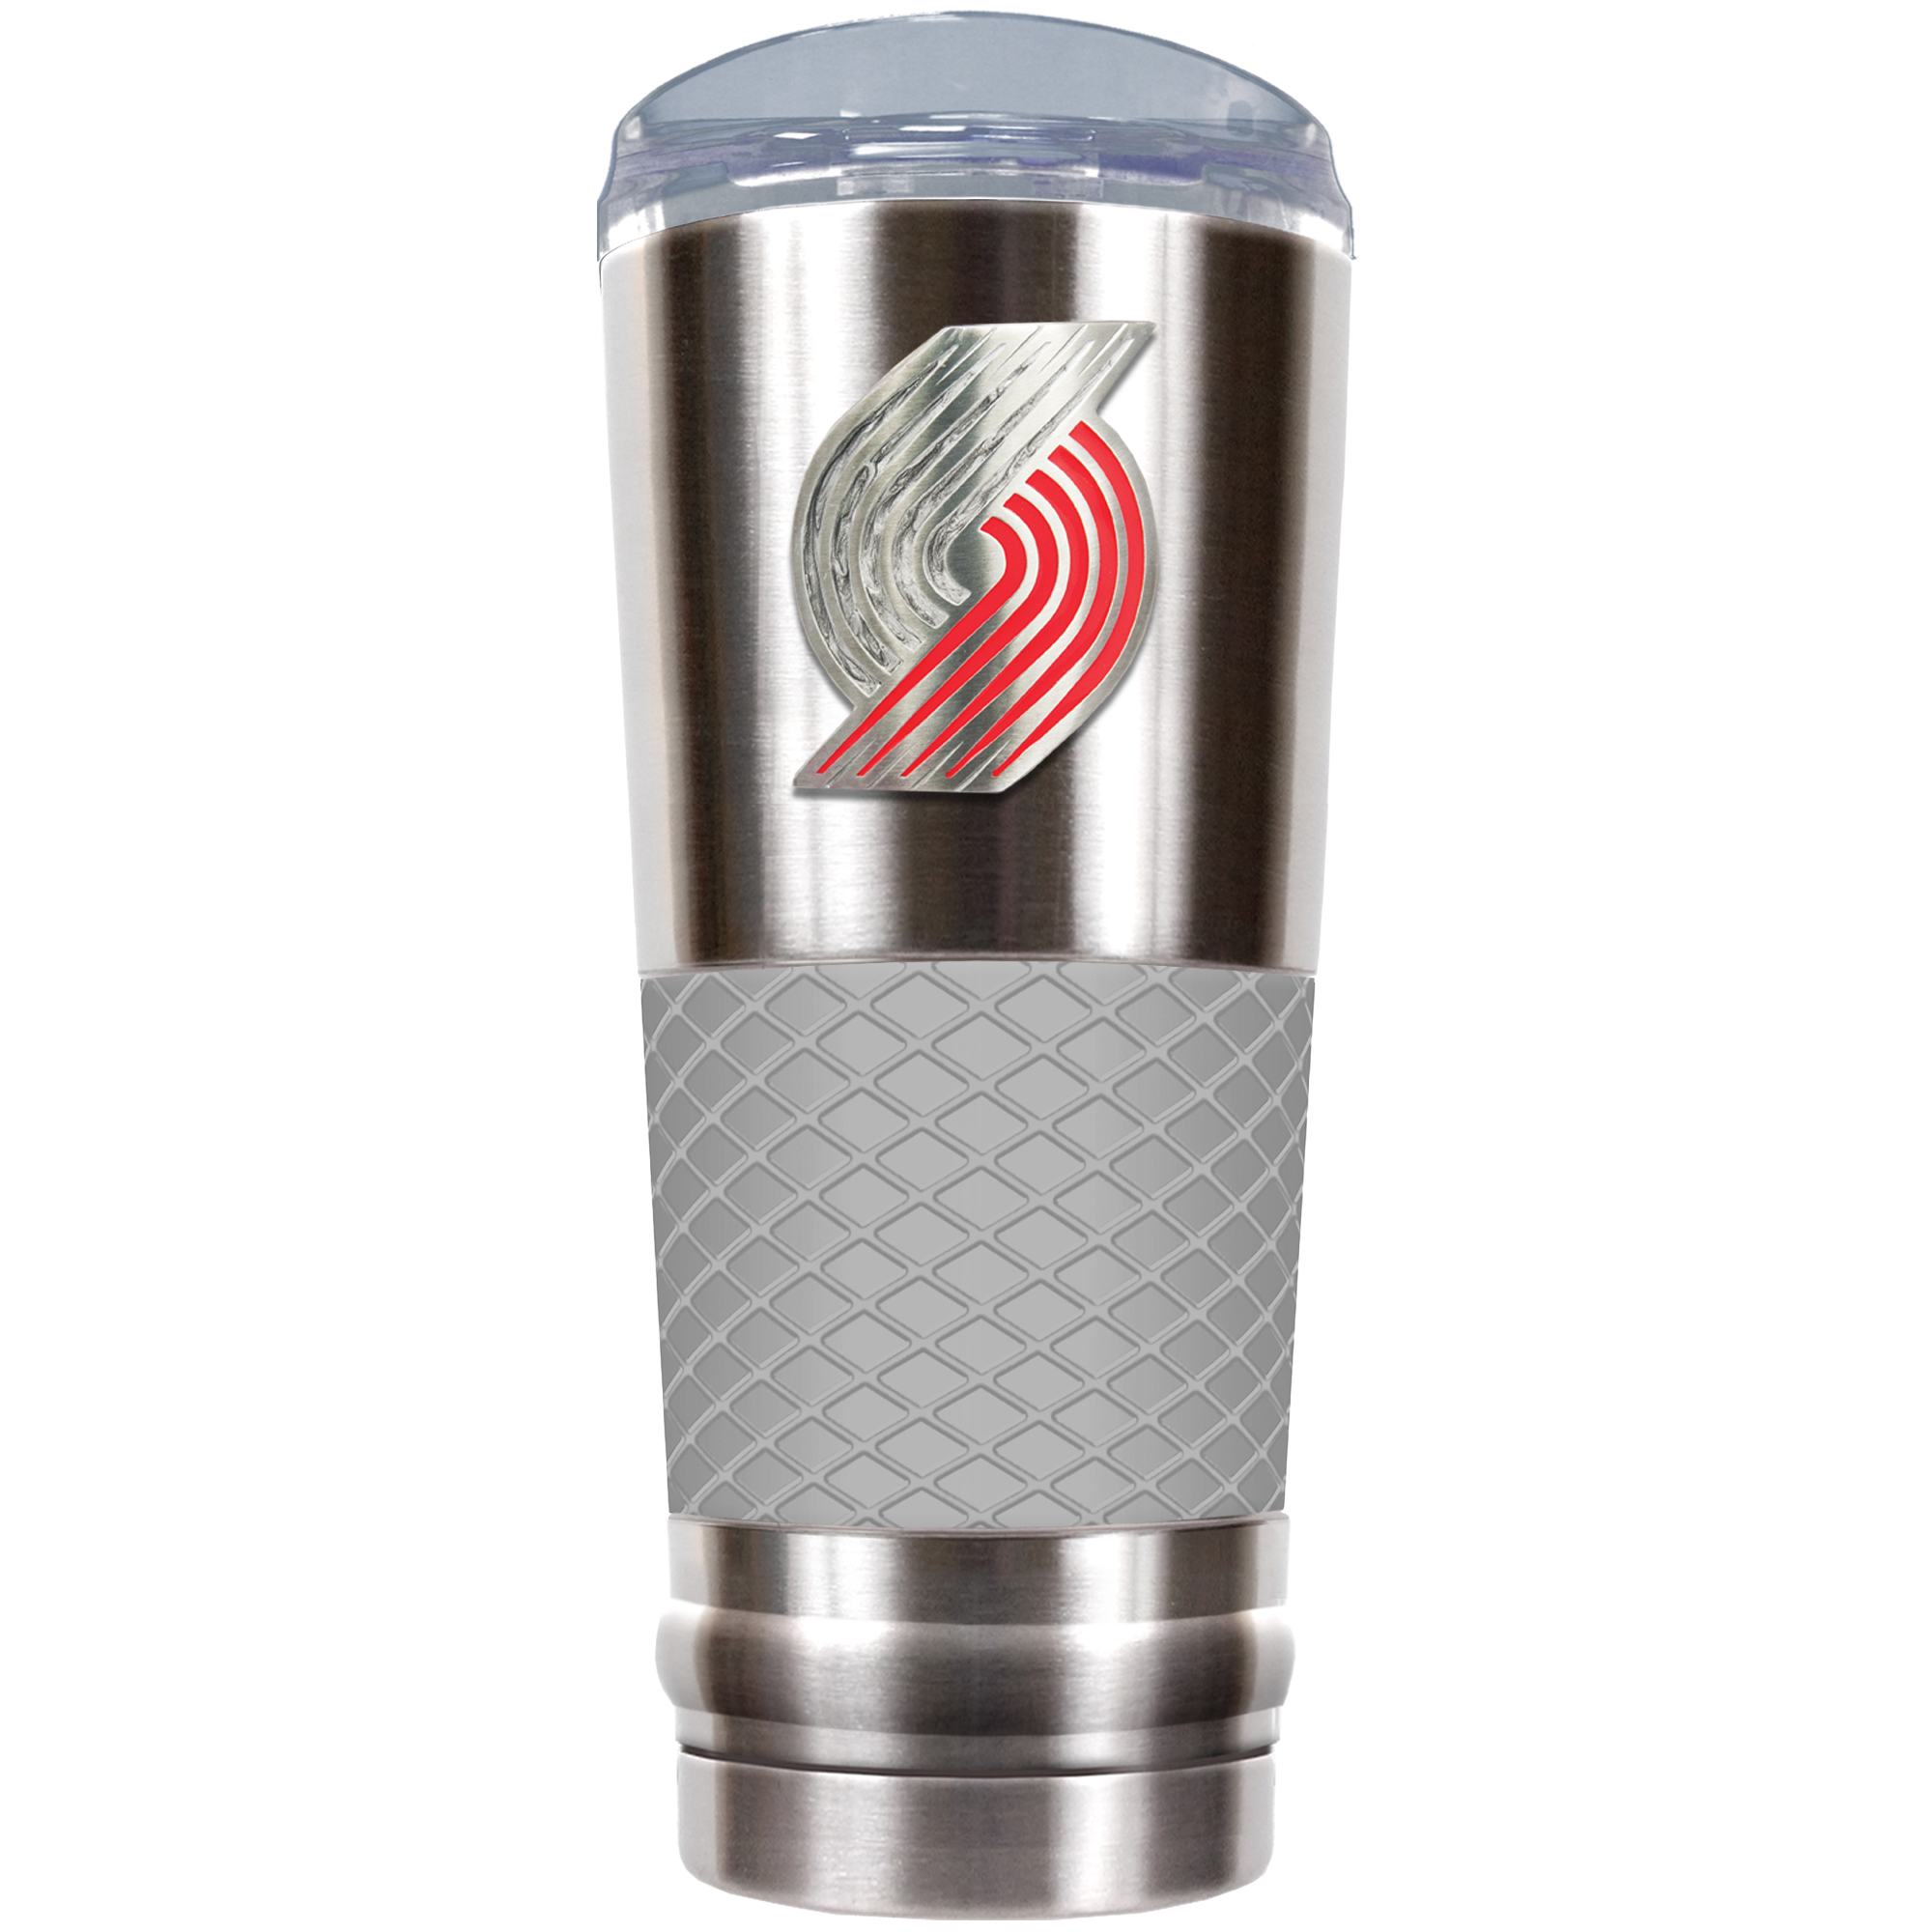 Portland Trail Blazers 24oz. Draft Tumbler - Gray - No Size